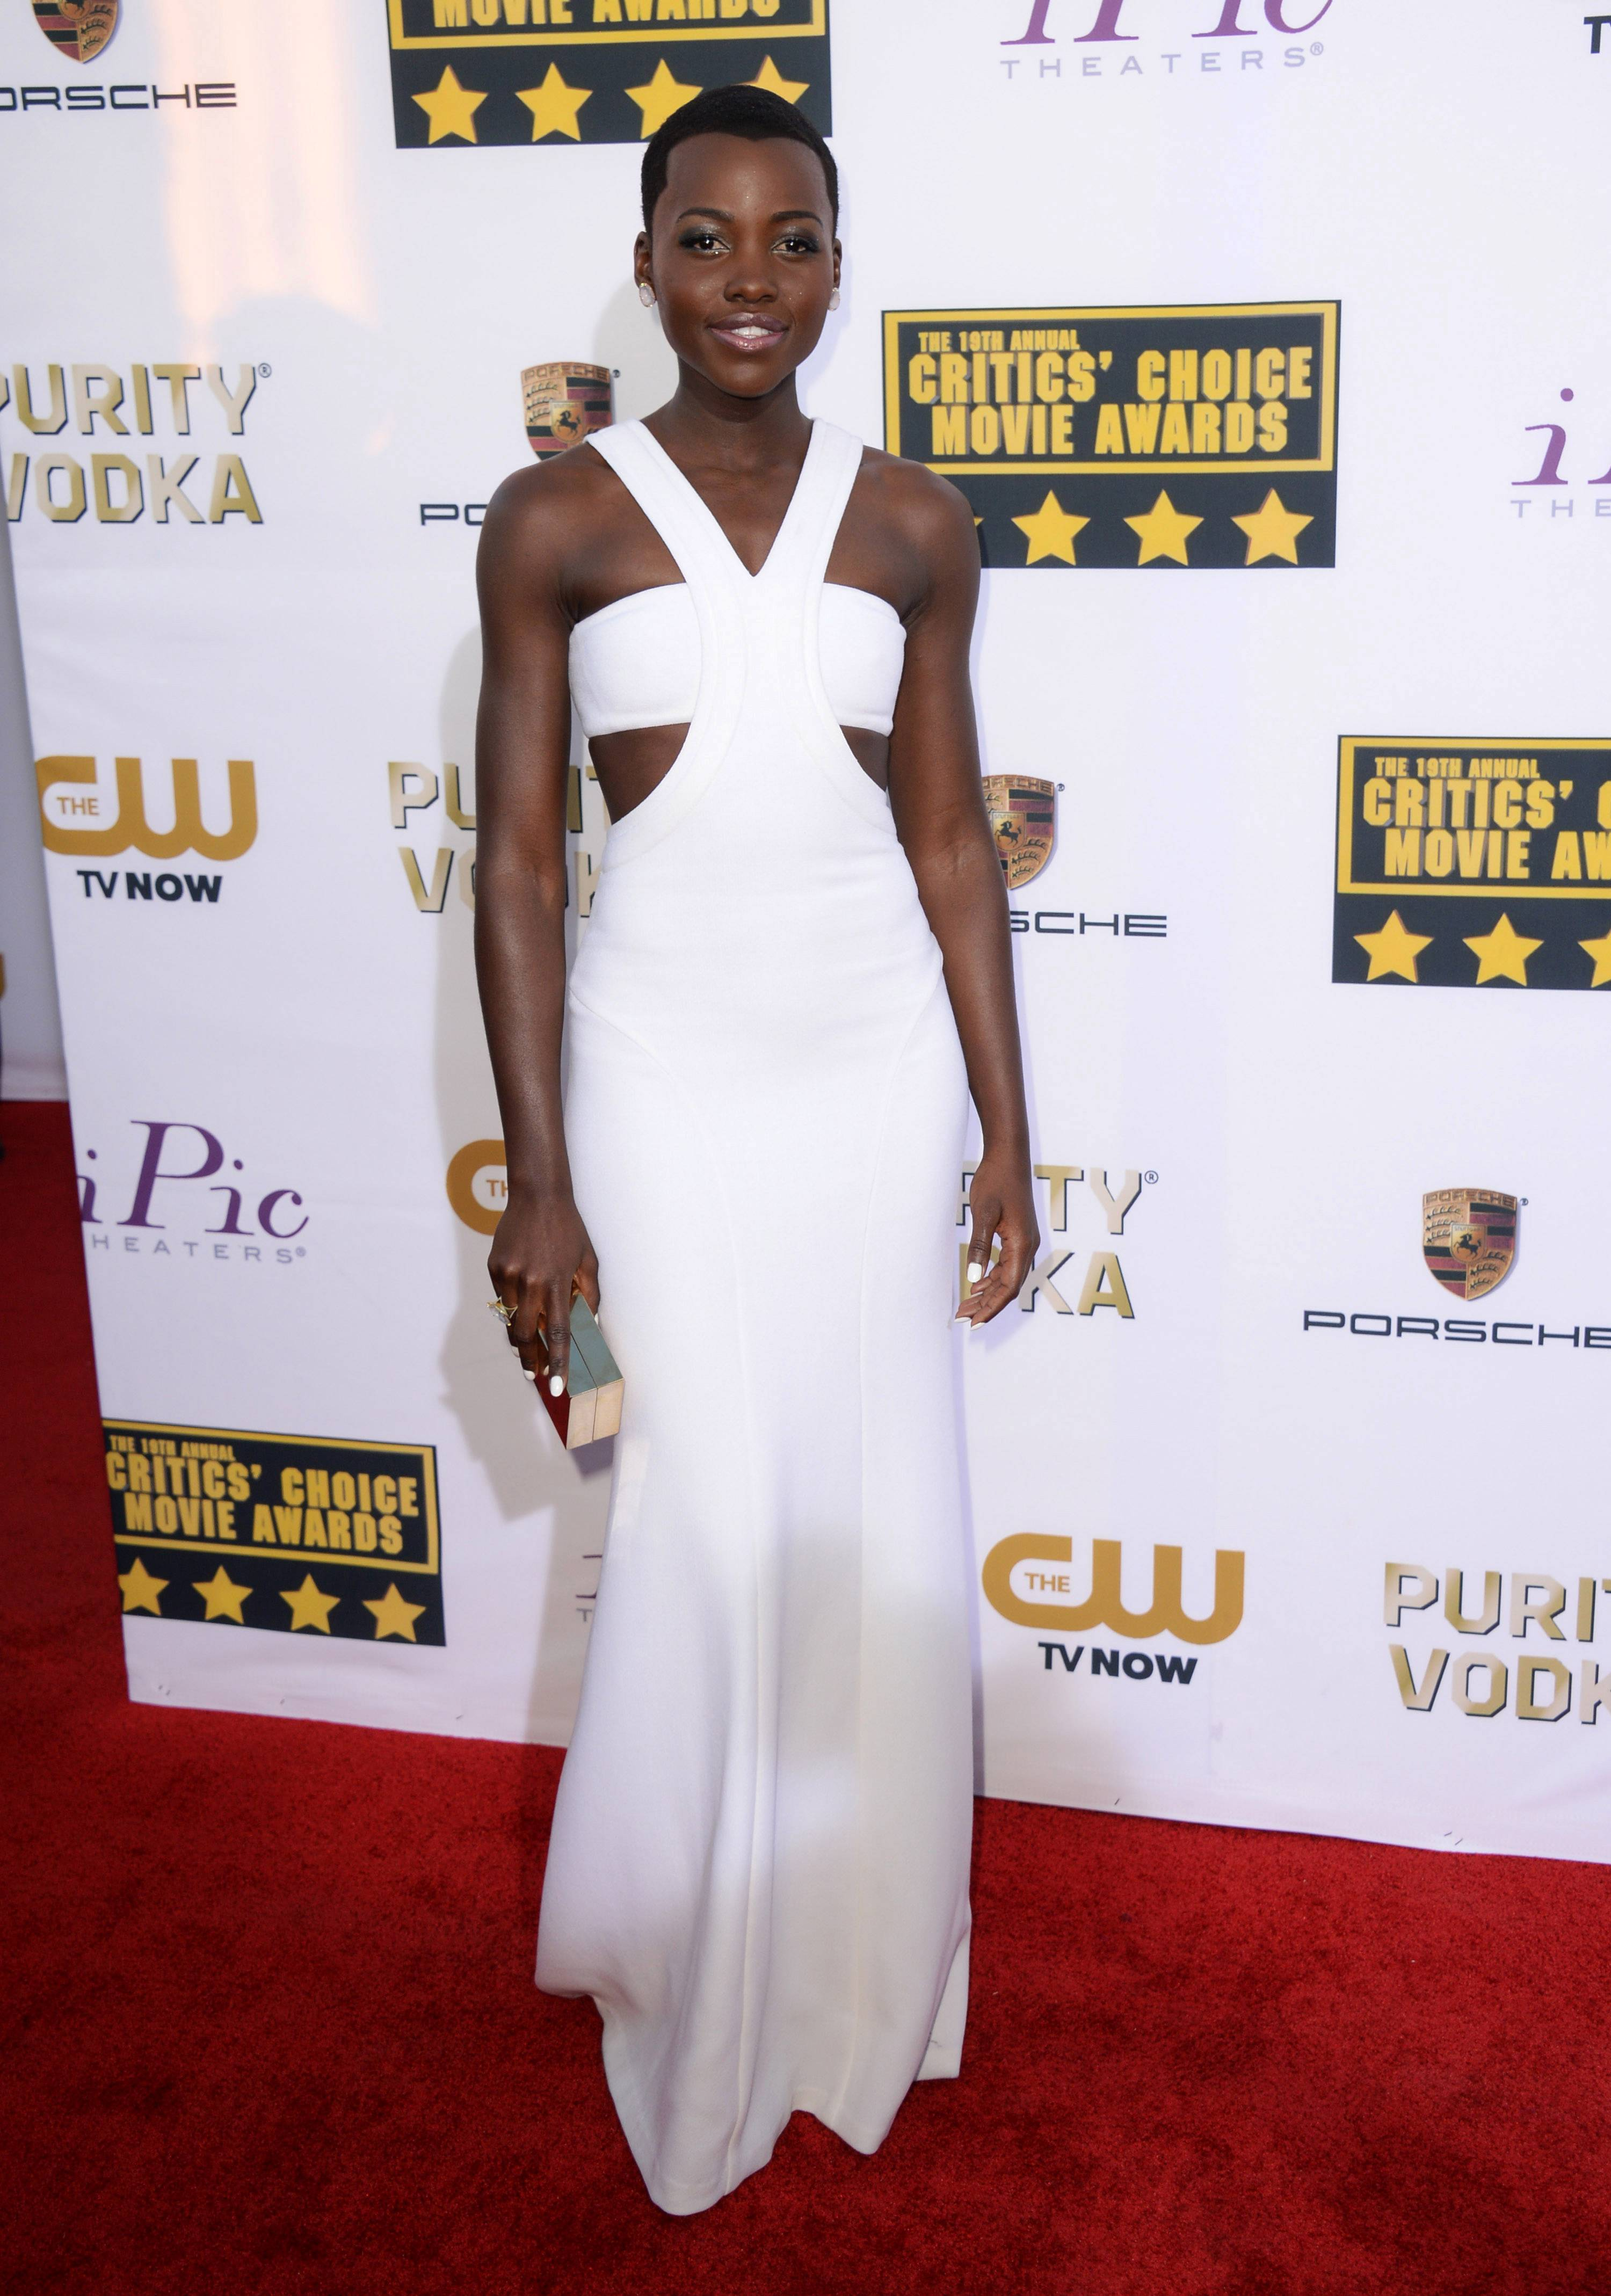 Actress Lupita Nyong'o wore a white gown at the 19th annual Critics' Choice Movie Awards in January.